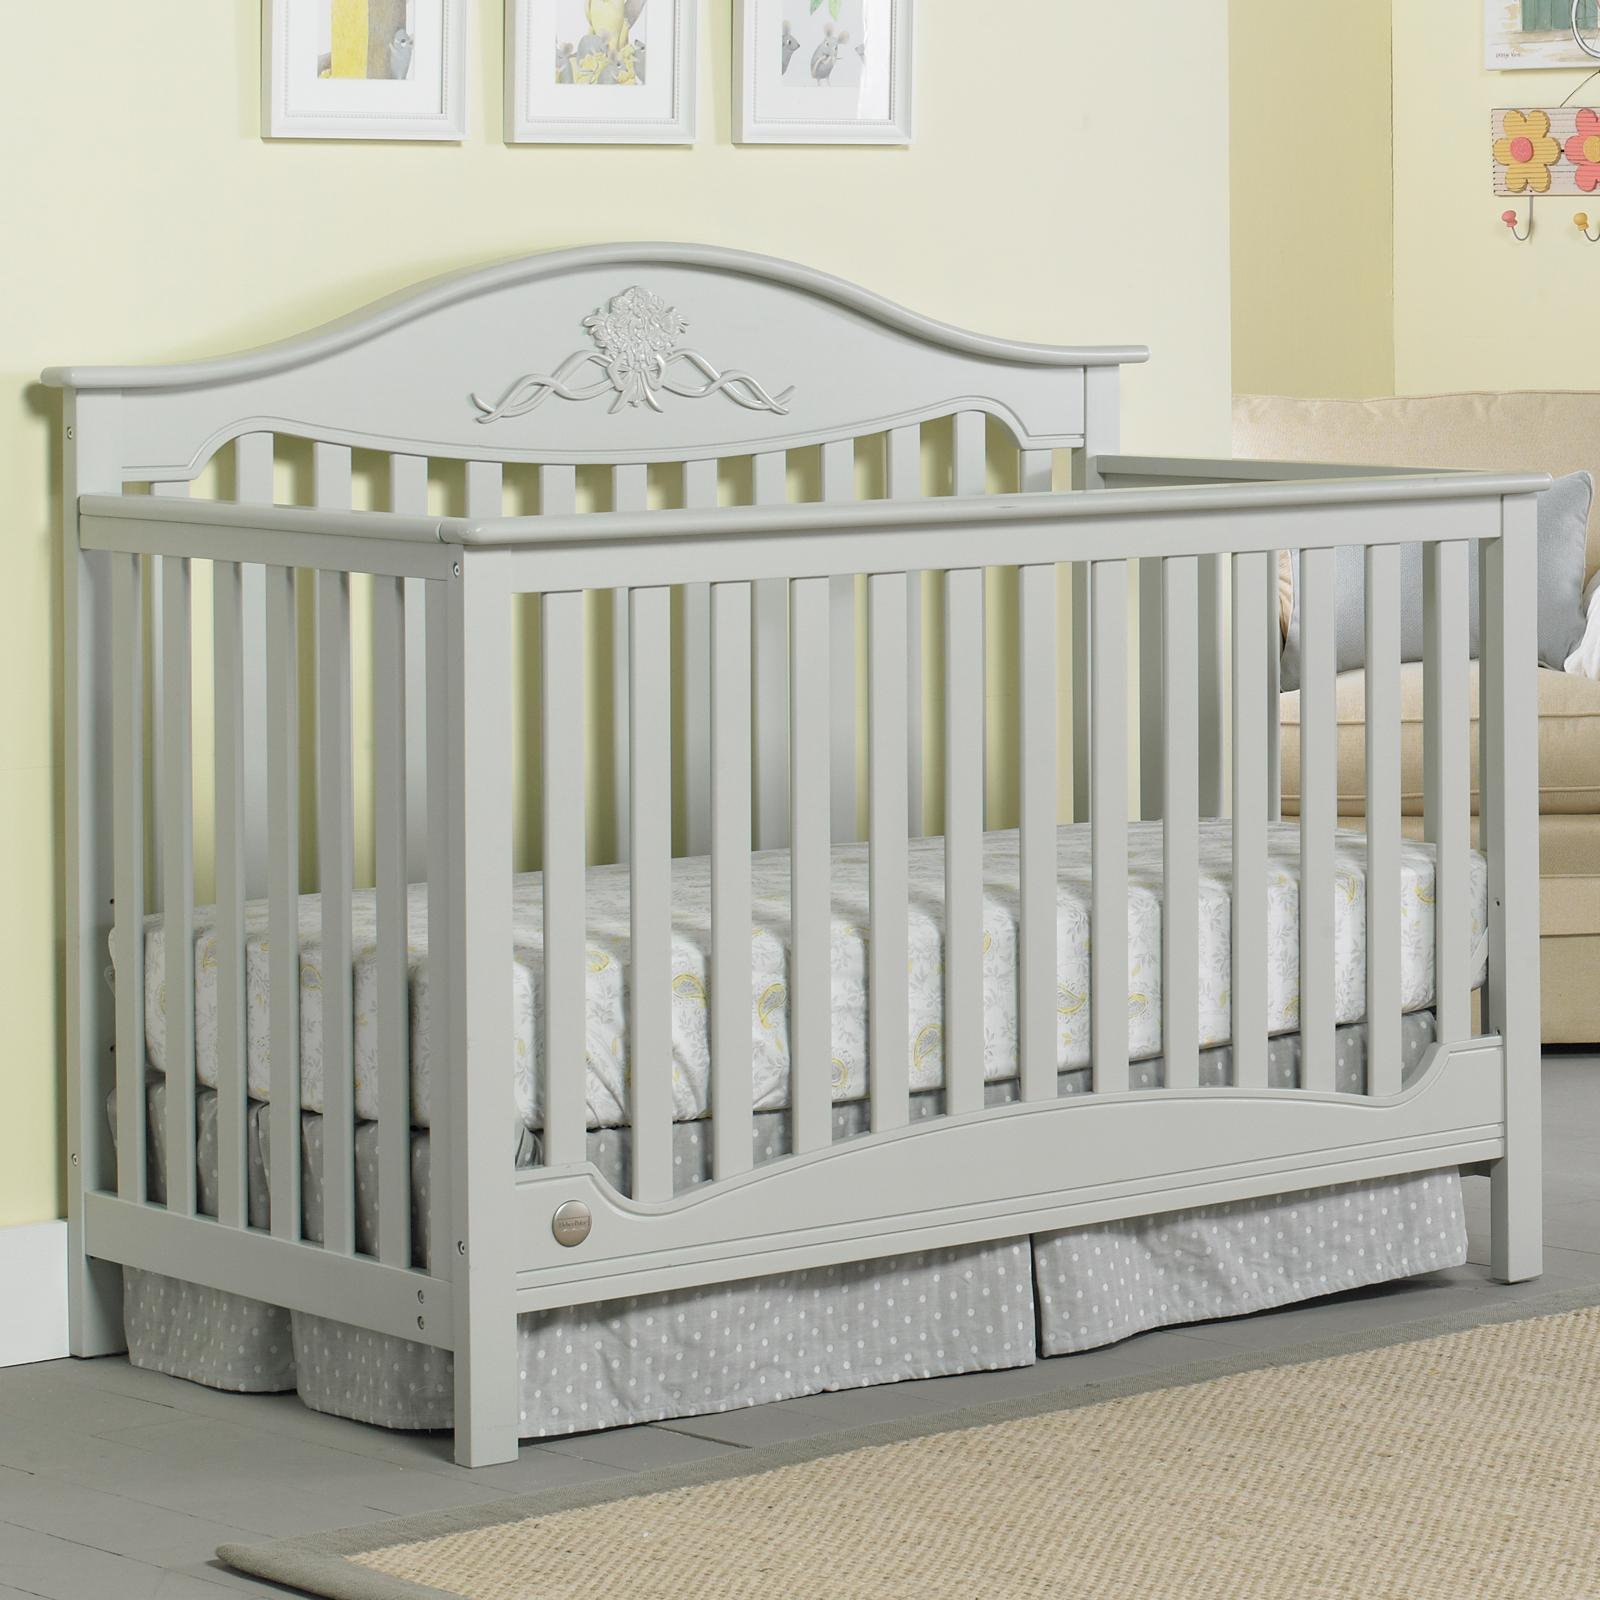 ag wctjjicujaka baby china cribs supplies of hospital prices bed medical crib product